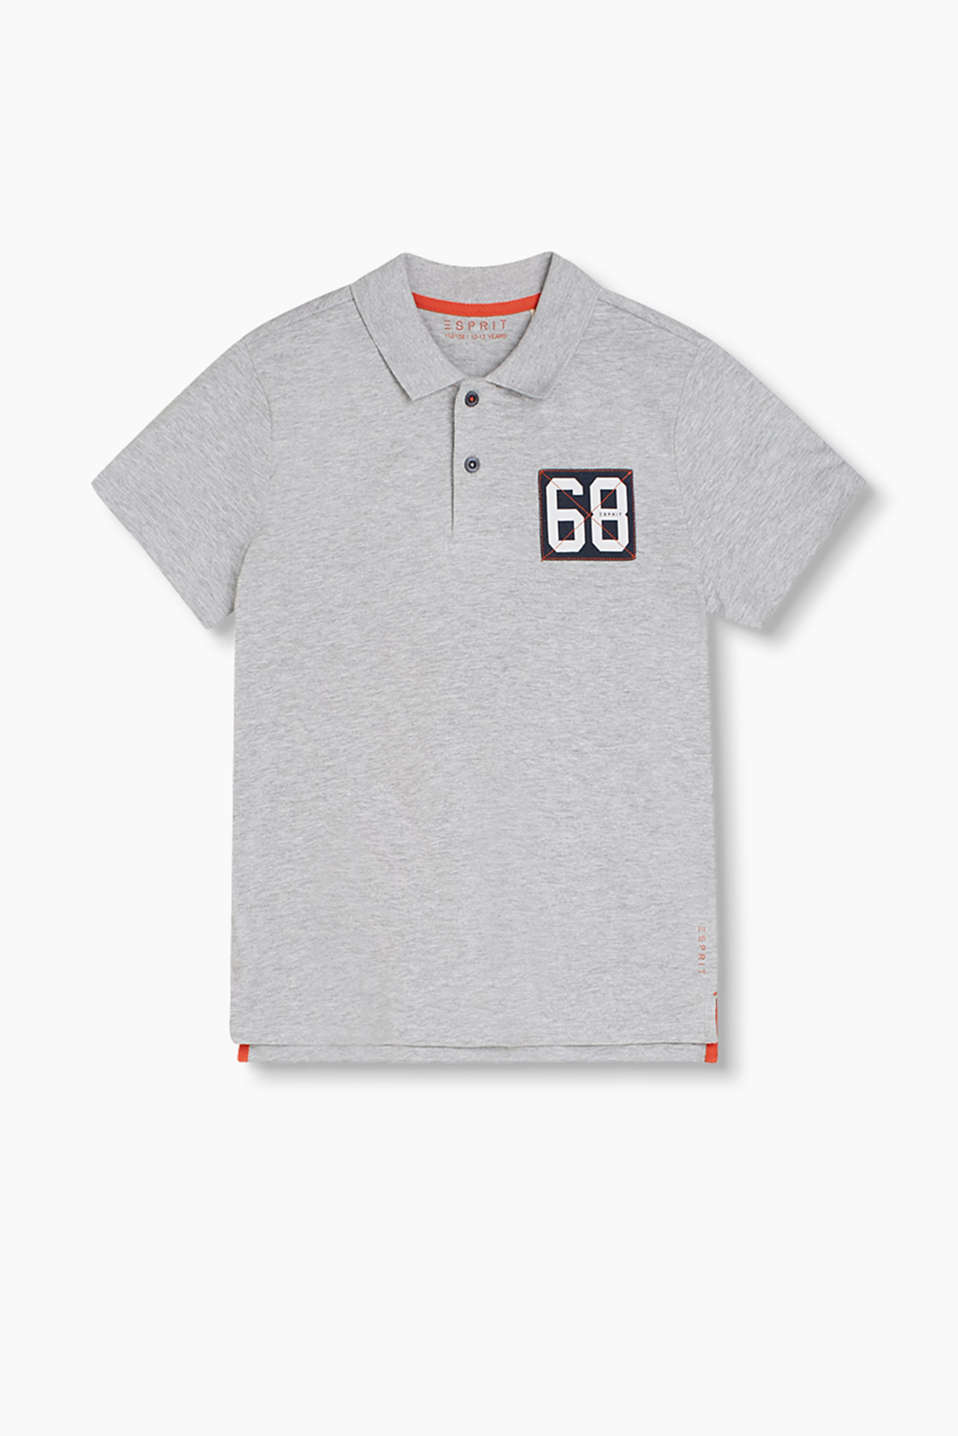 Smart-lässiges Basic: Polo-Shirt aus softem Baumwoll-Jersey